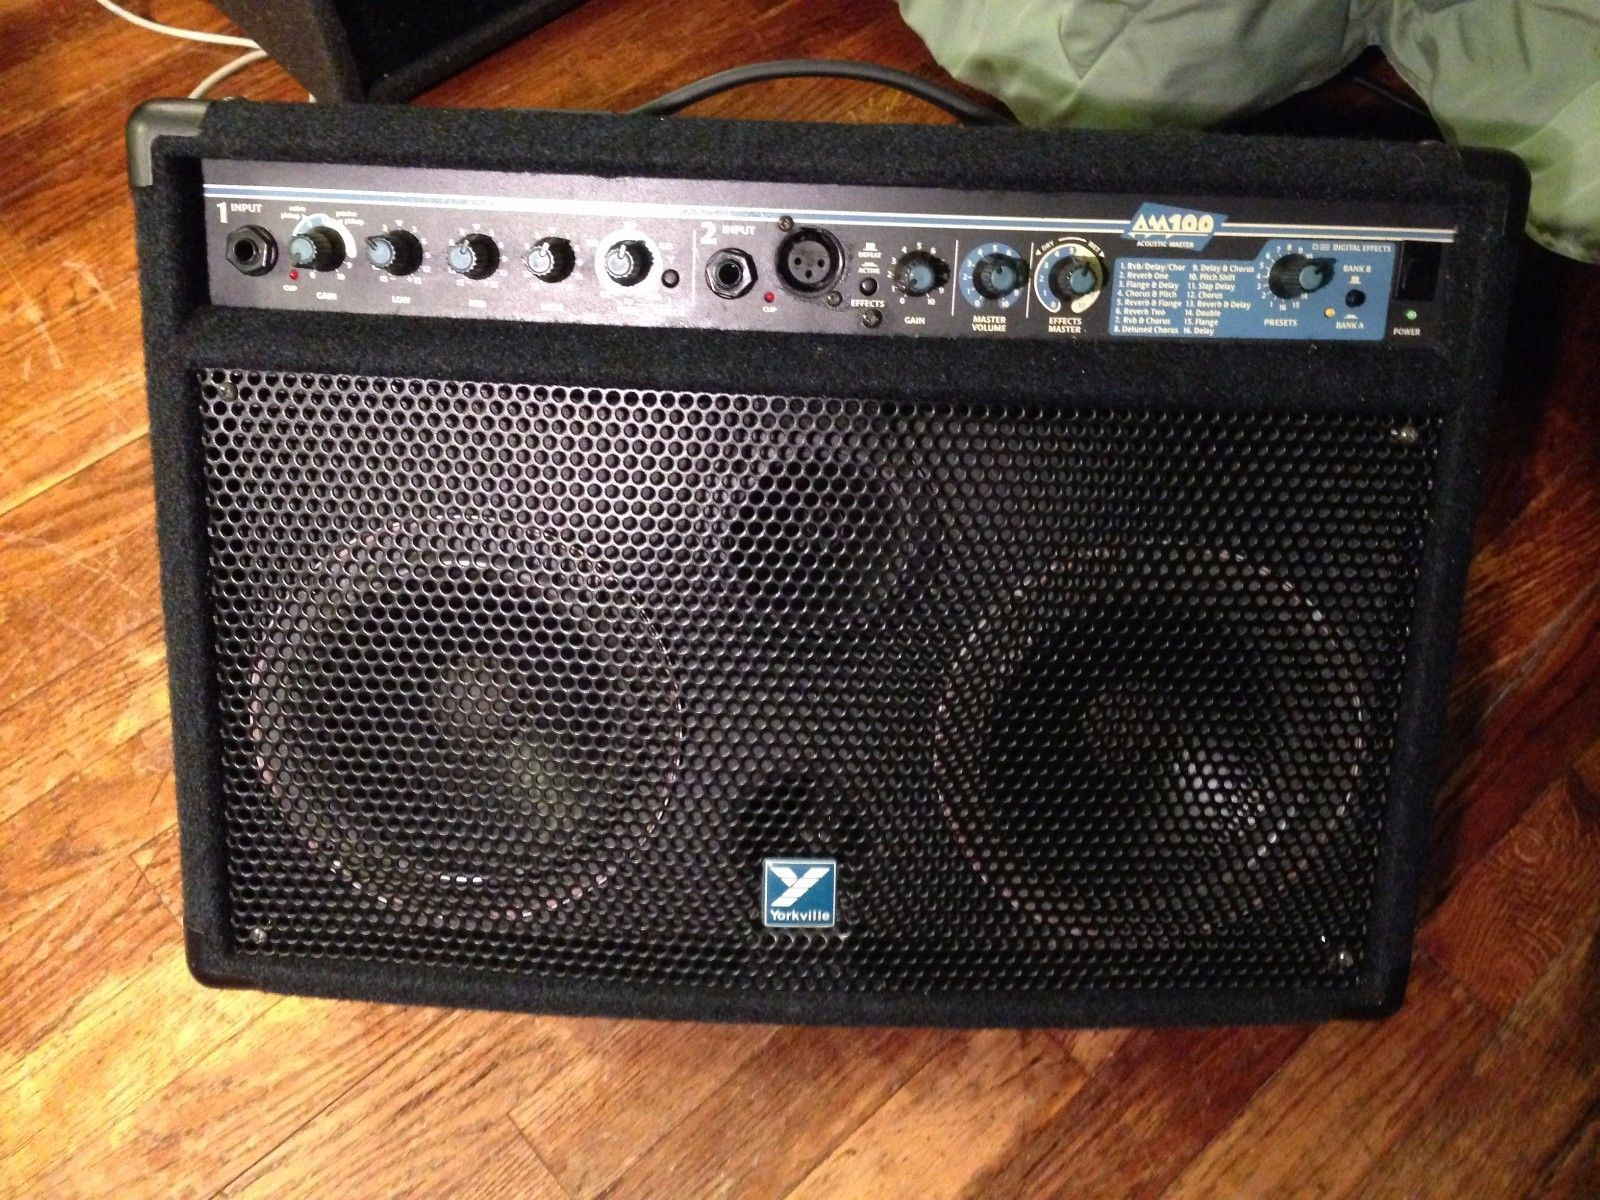 yorkville am100 acoustic guitar amp amplifier with effects 100 watts rh pinterest com